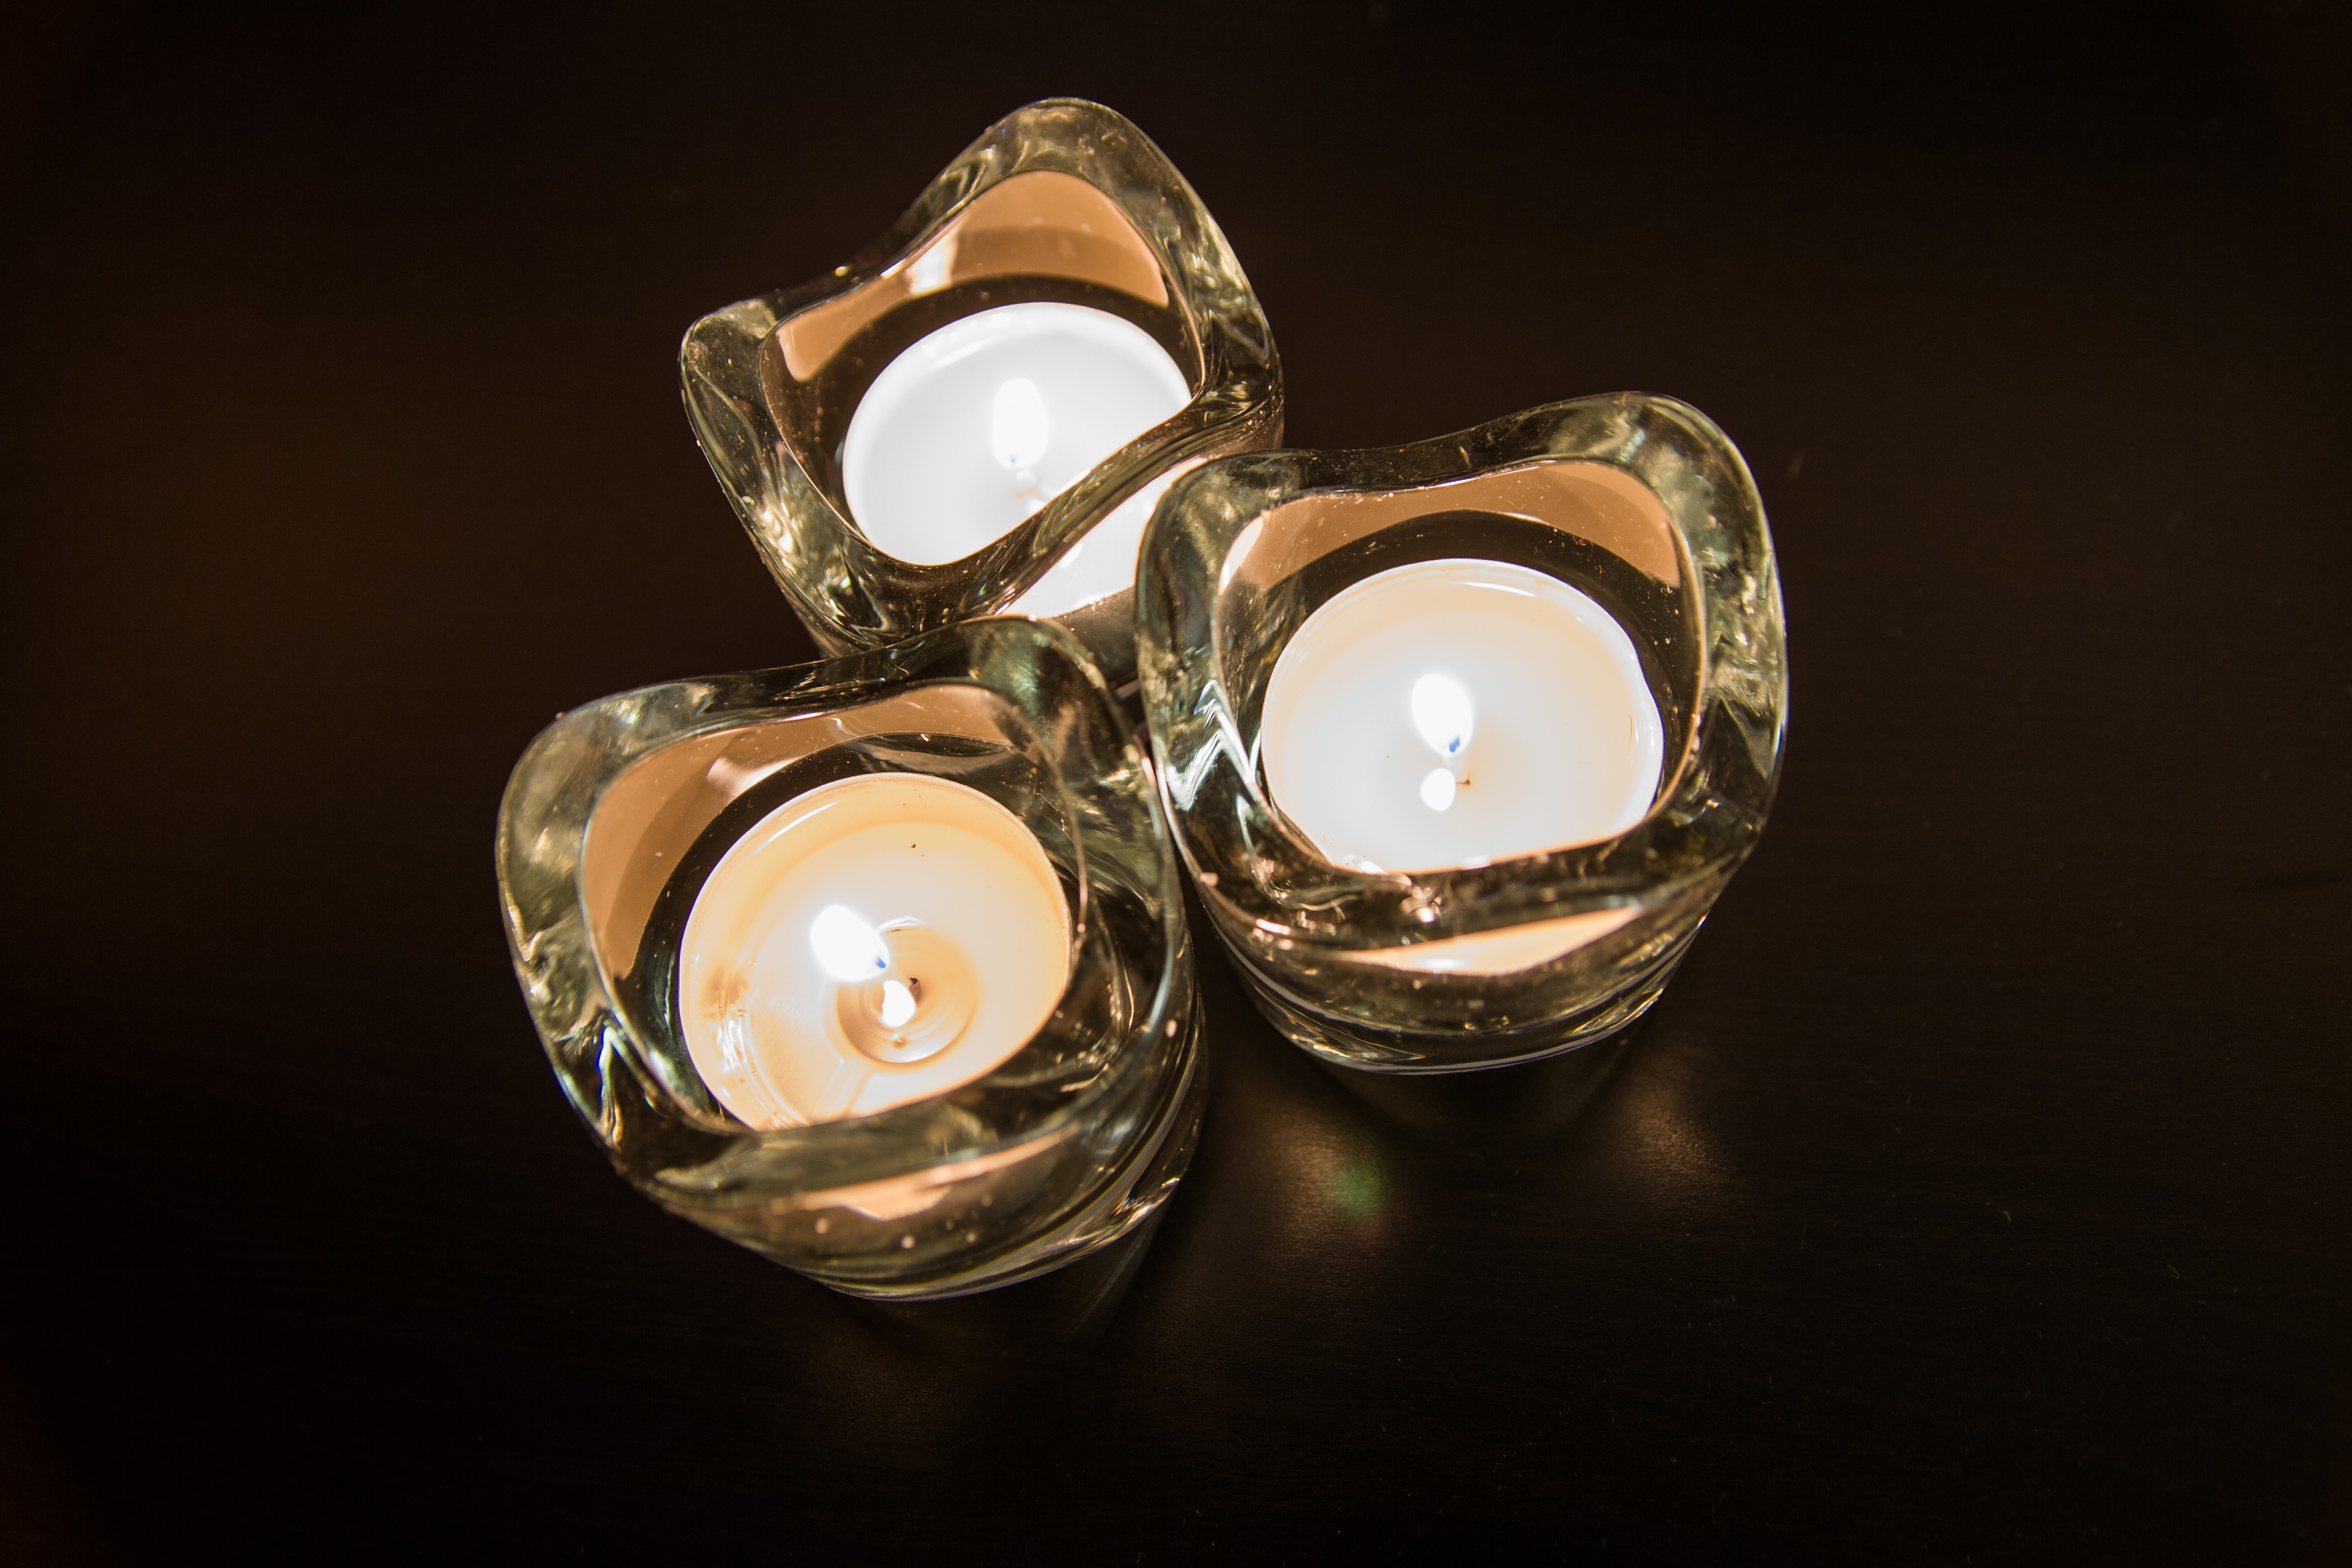 Candles at night, Atmosphere, Black background, Candle, Candles, HQ Photo